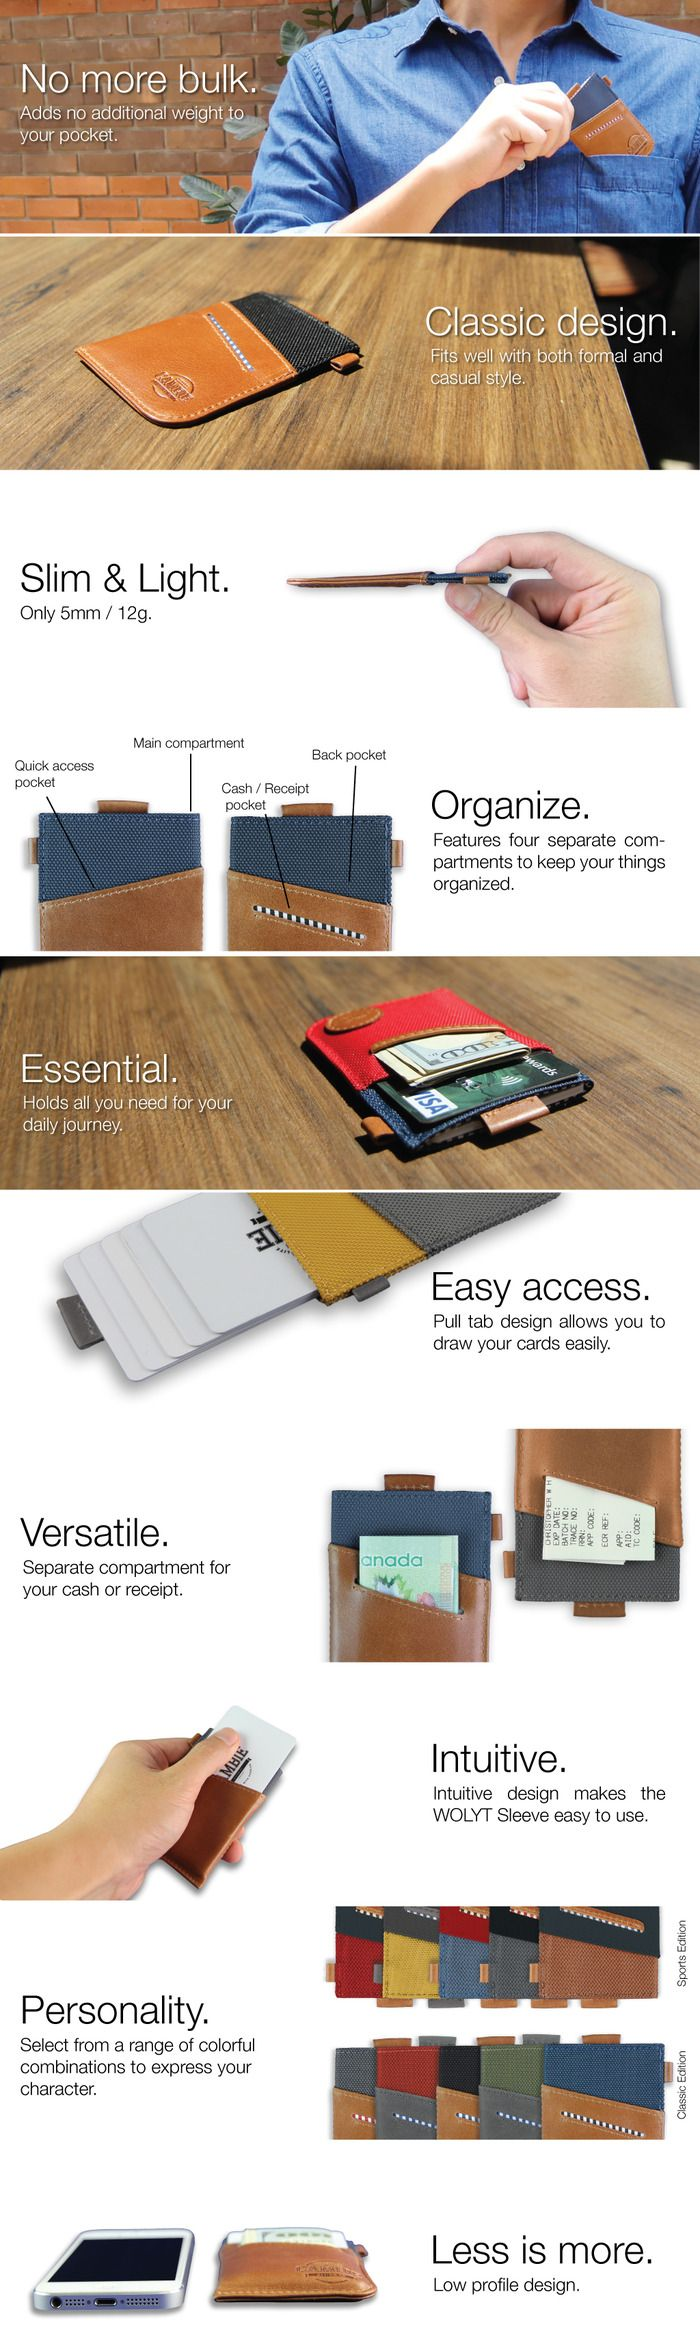 WOLYT™ Sleeve - A slim wallet solution that fits your style. by Chris Fu — Kickstarter